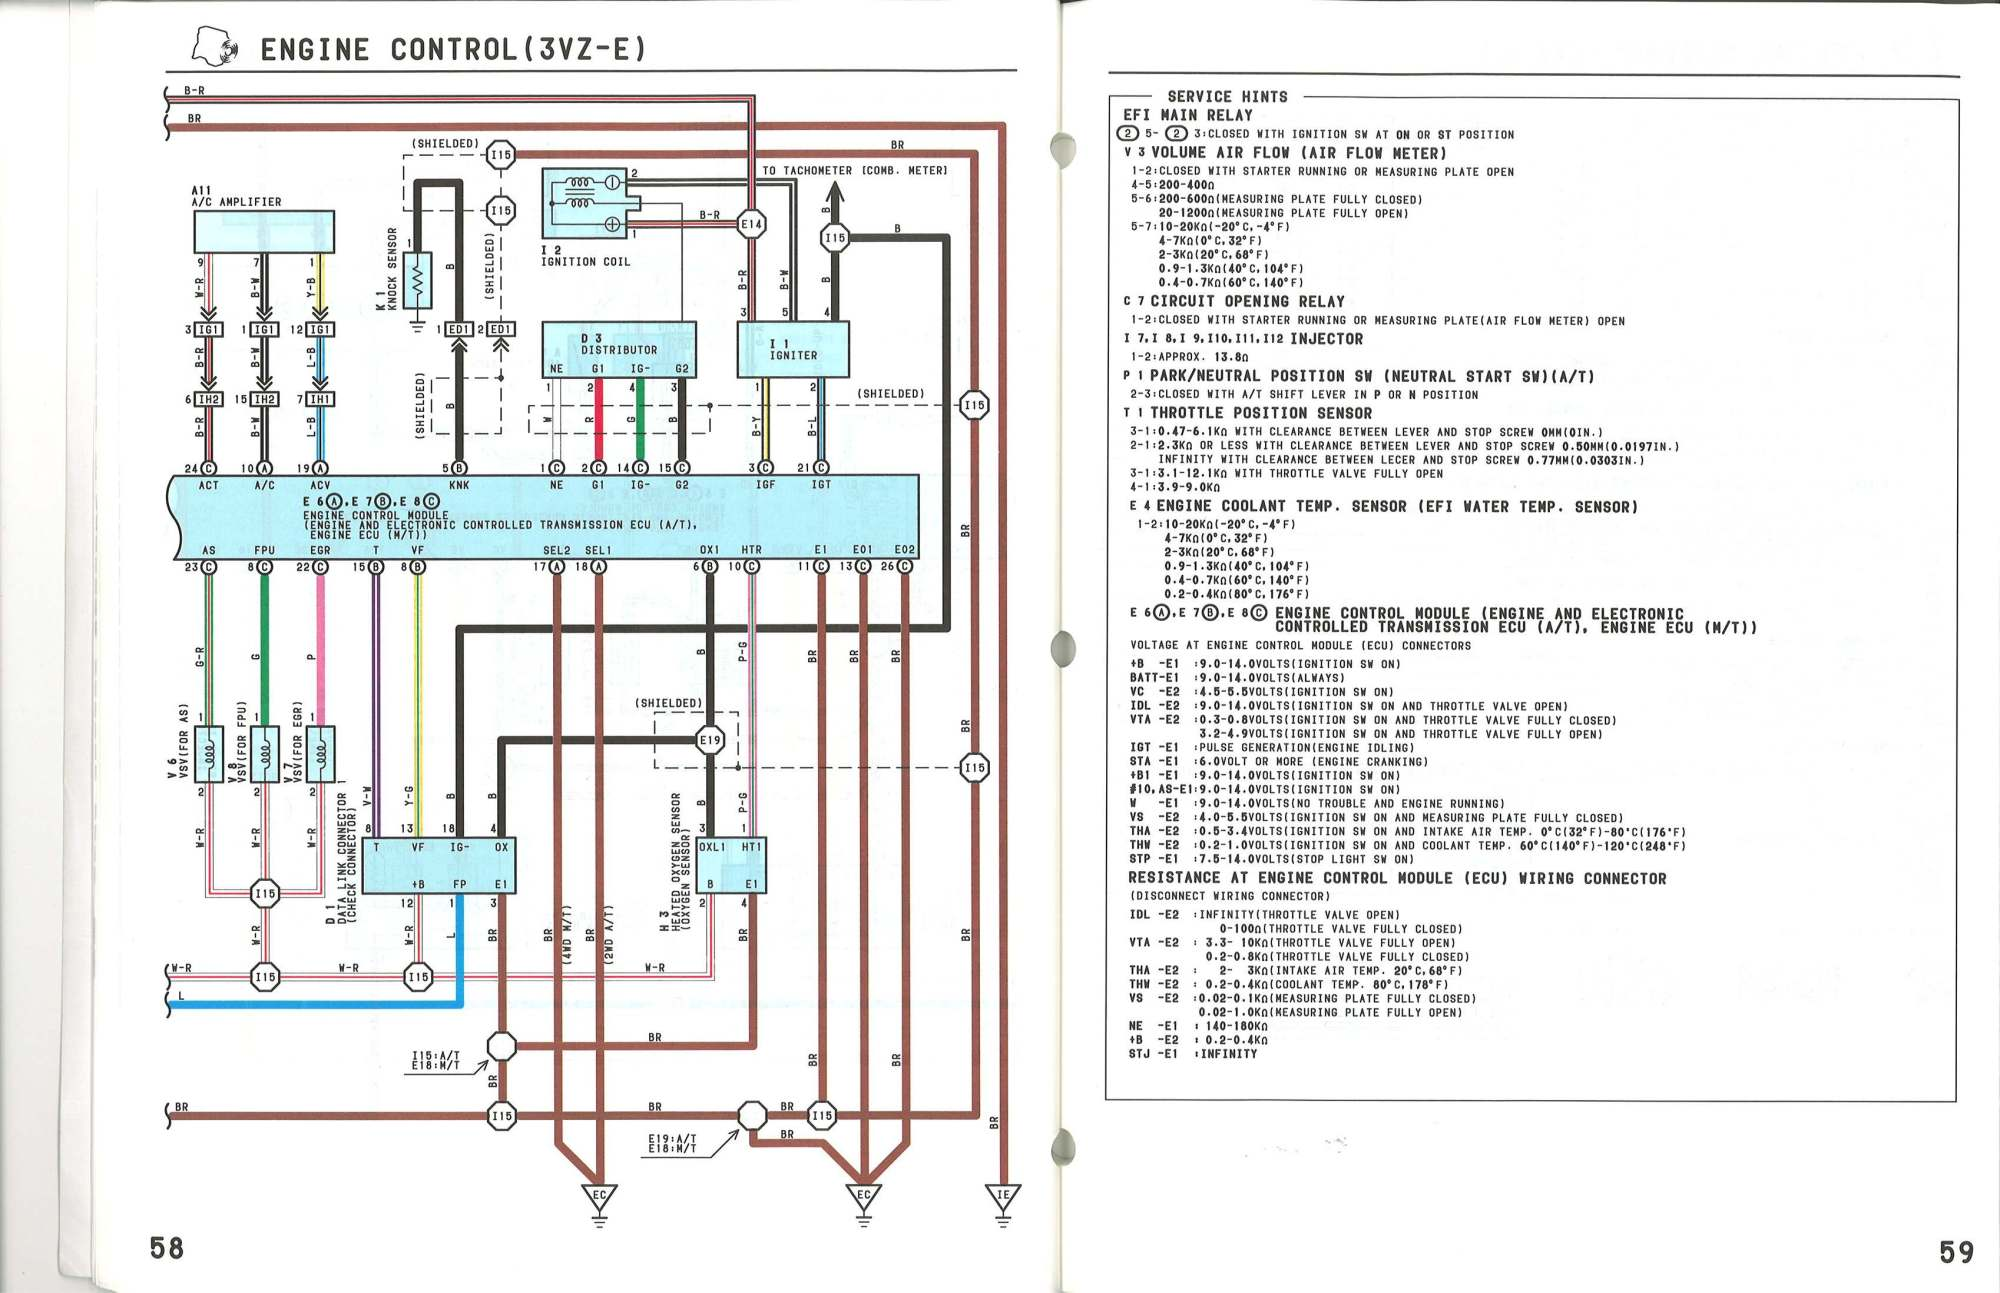 hight resolution of toyota pickup wiring harness diagram further 1991 toyota pickup 5 1991 toyota pickup wiring harness